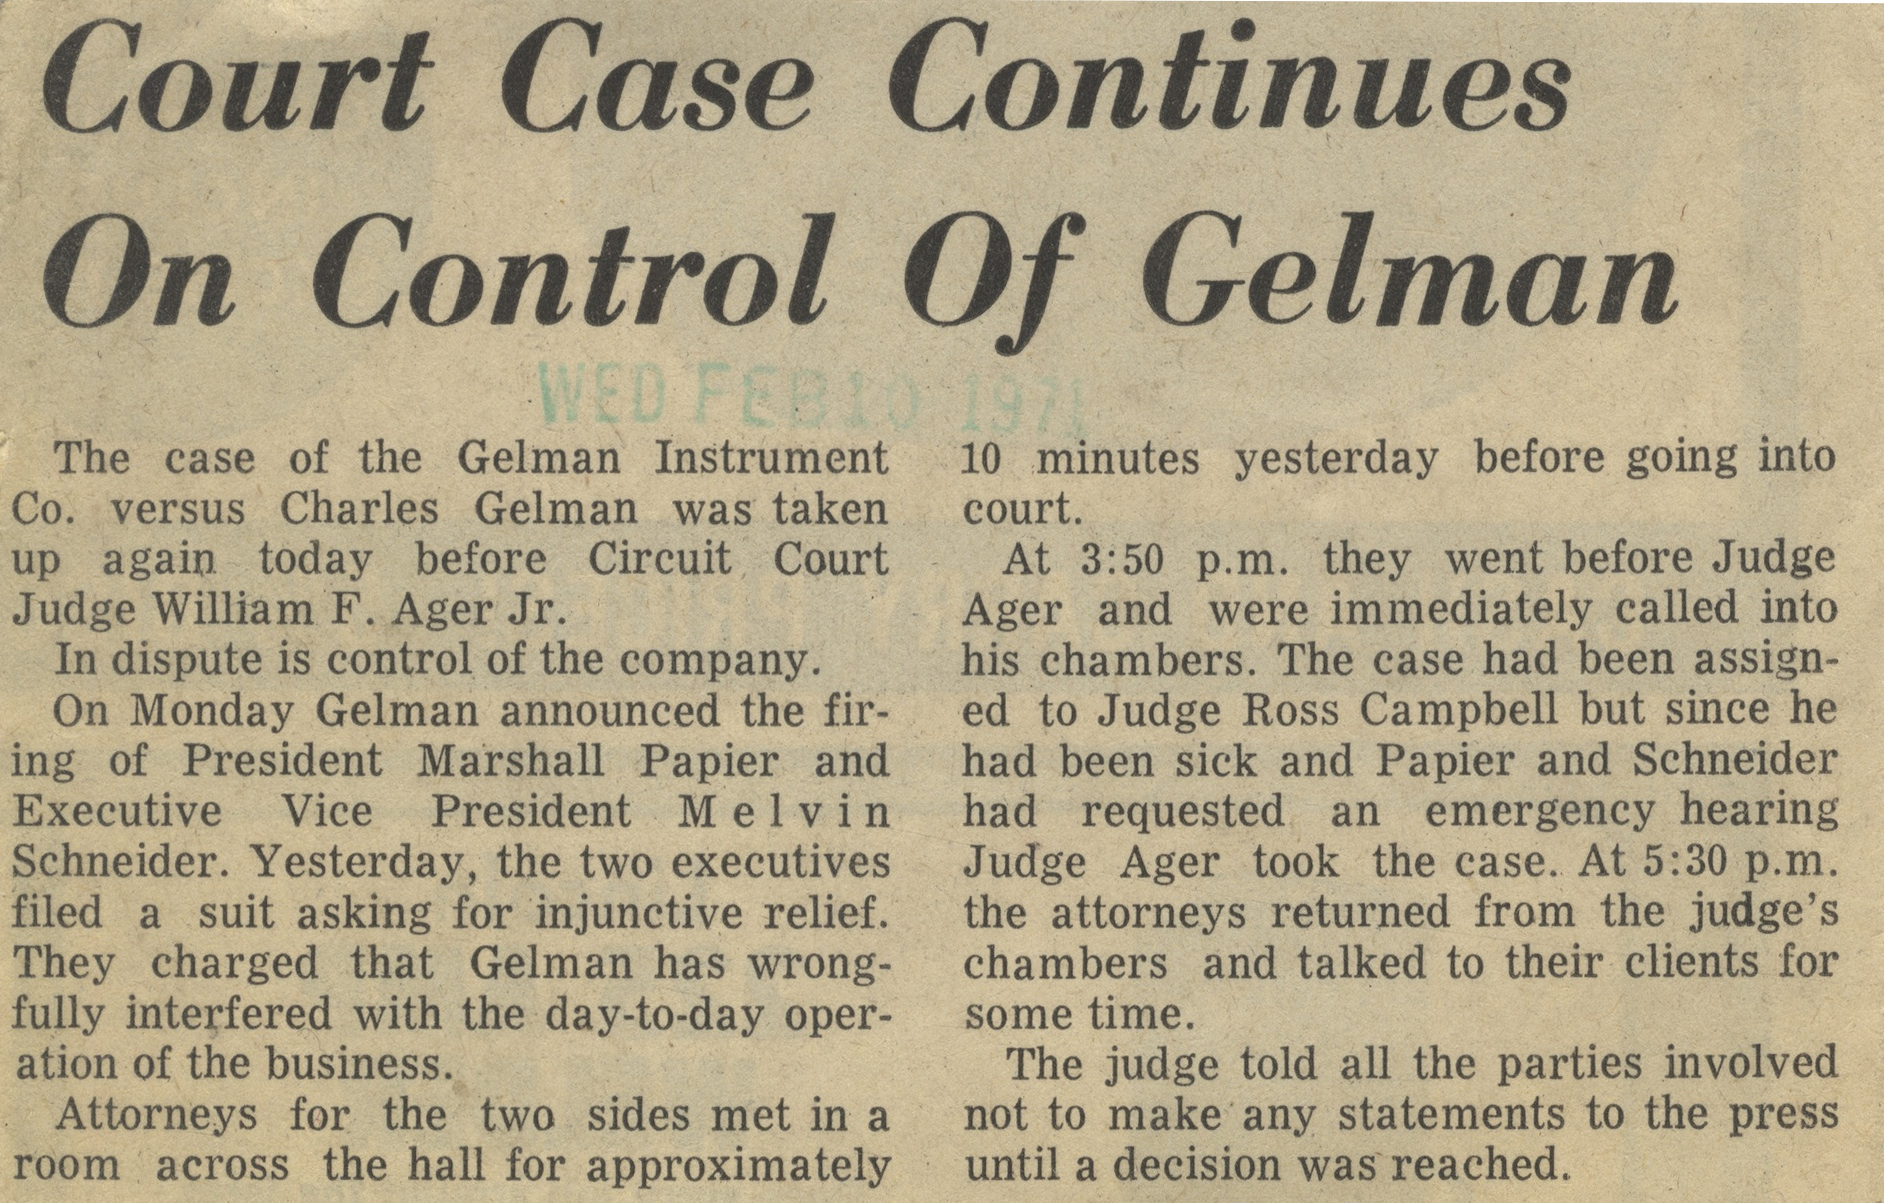 Court Case Continues On Control Of Gelman image